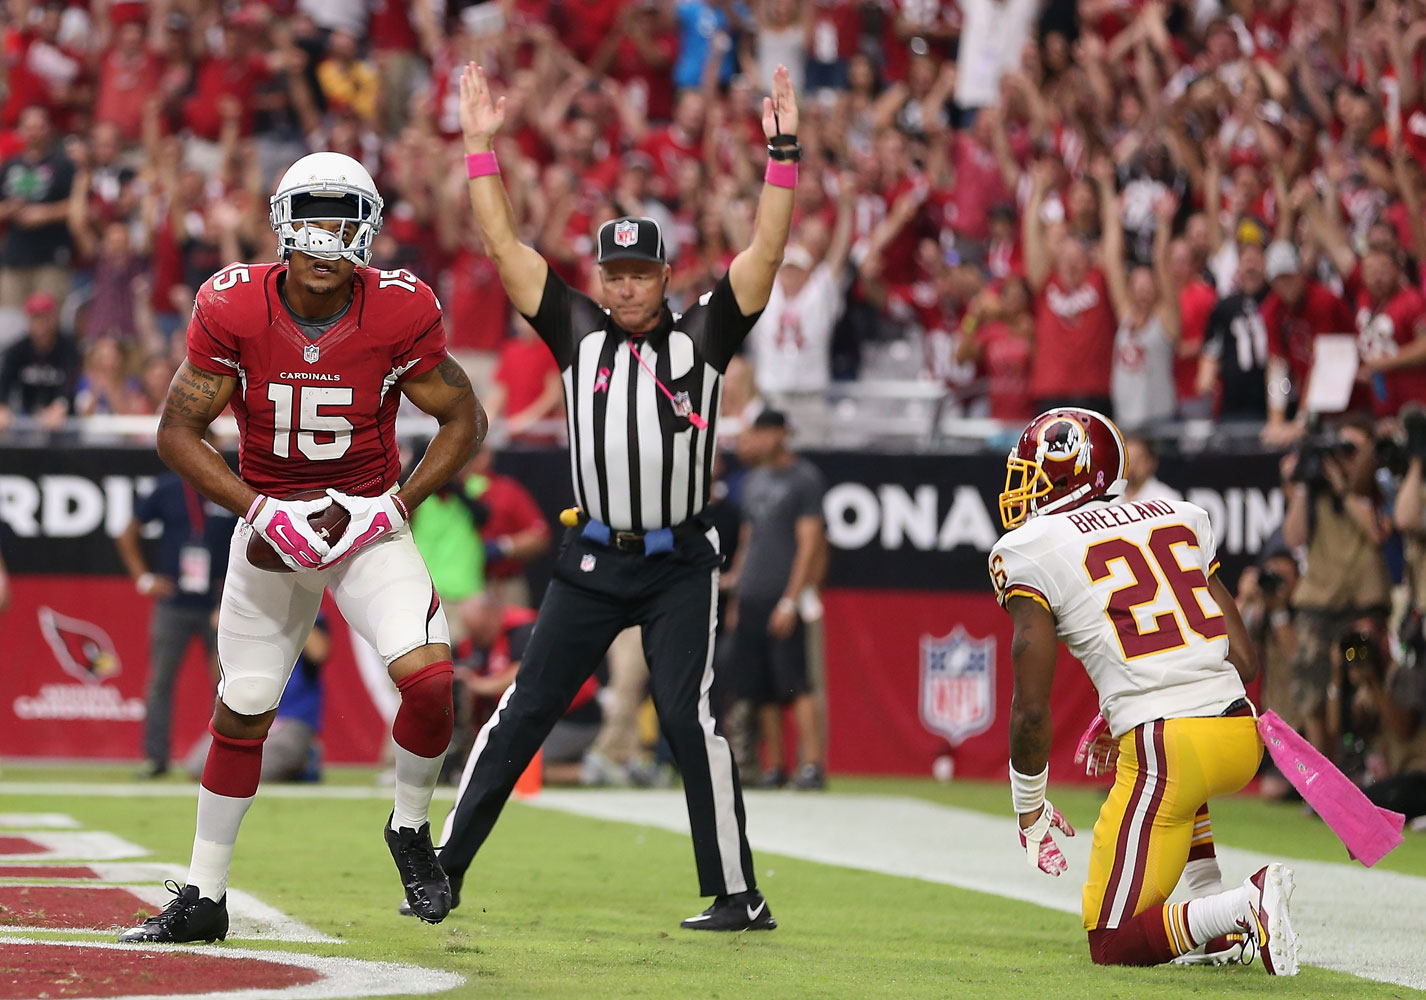 Covering the bases: Why, Skins fans?